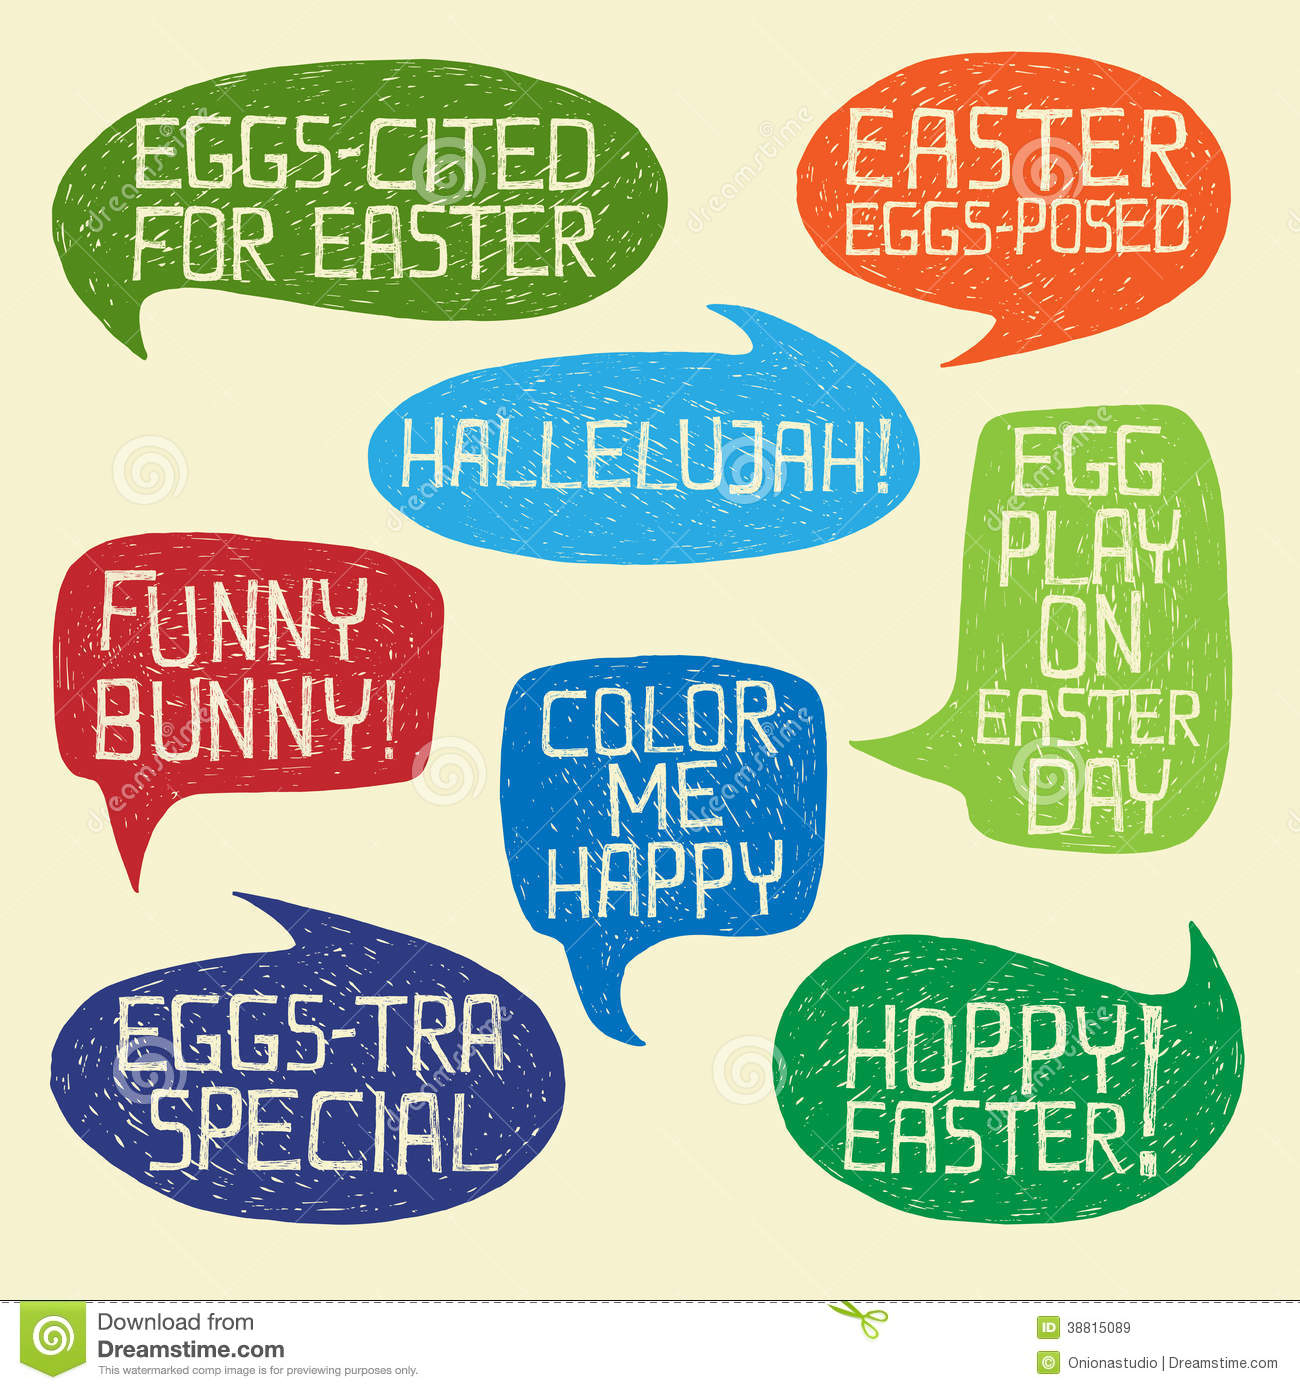 Happy Easter Humorous Phrases On Bubble Speeches Stock Vector